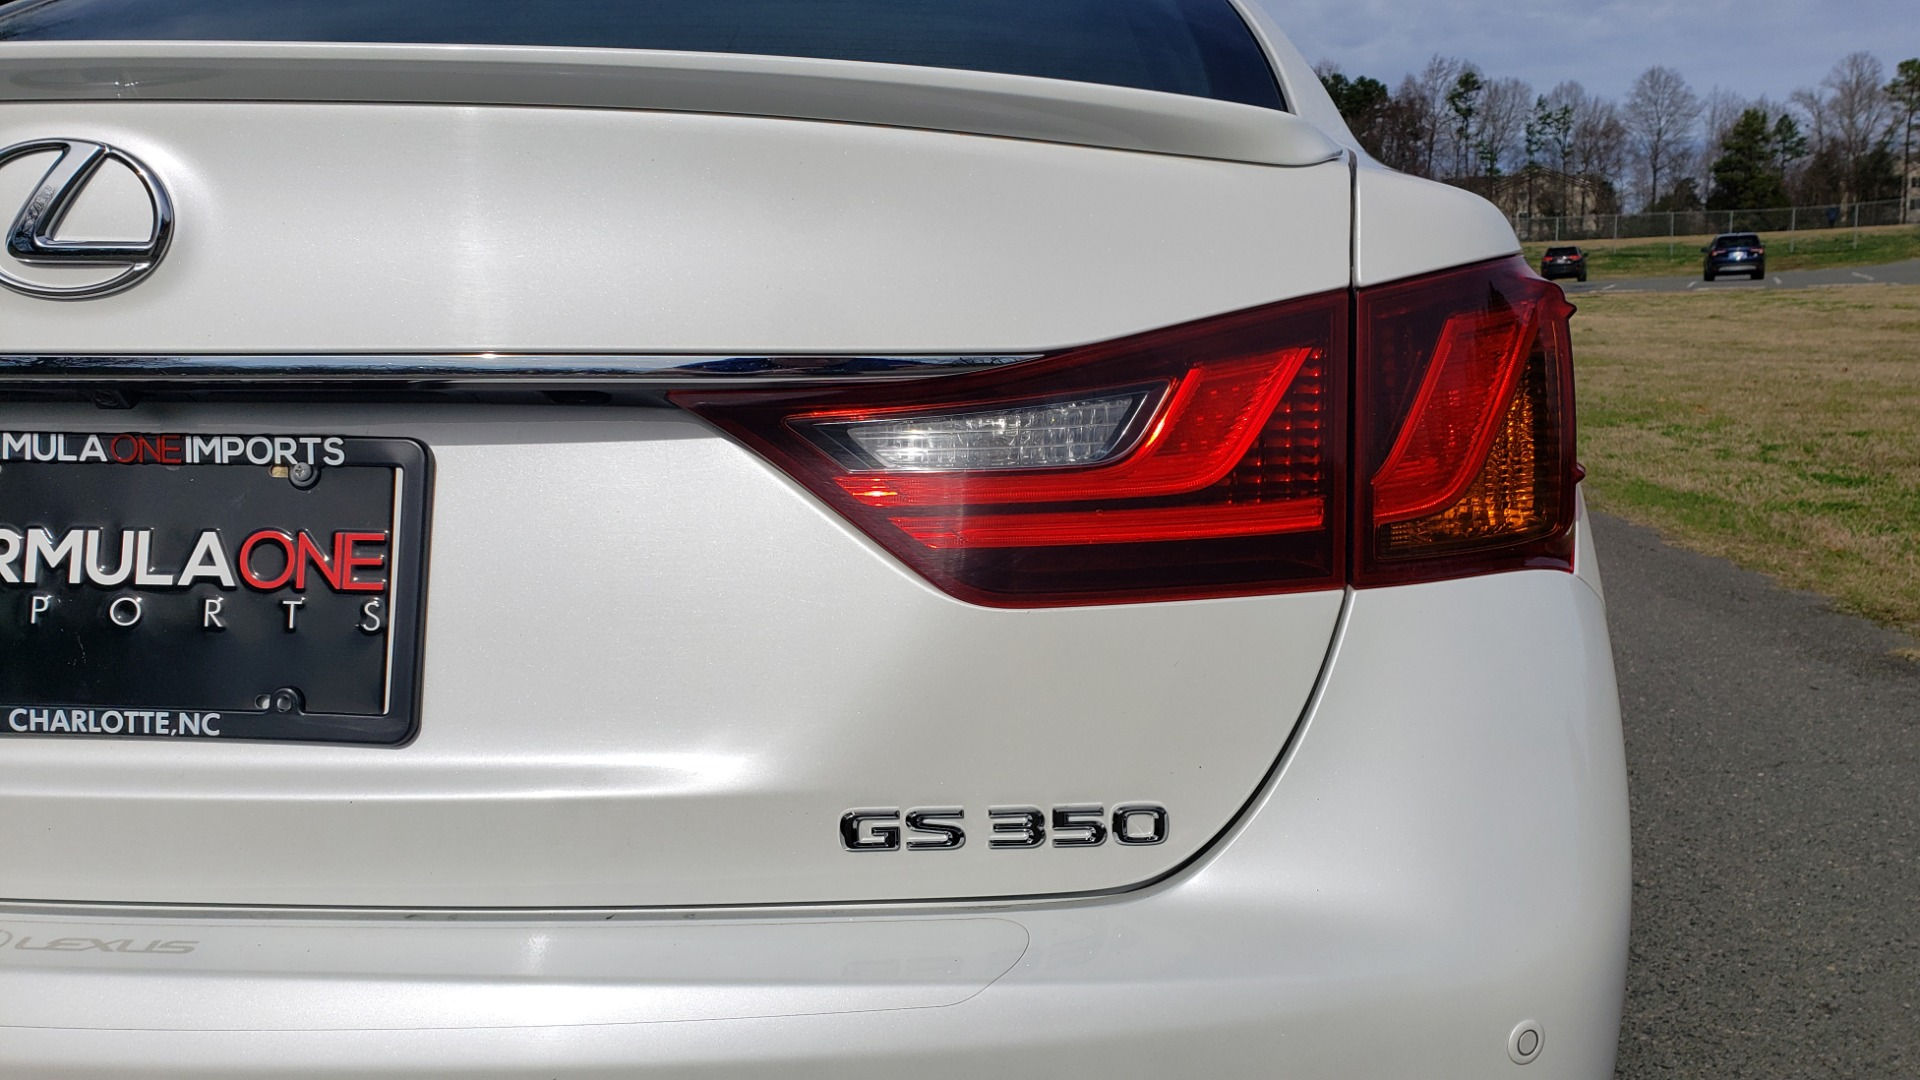 Used 2013 Lexus GS 350 F-SPORT / NAV / SUNROOF / BSM / PRK ASST / REARVIEW for sale Sold at Formula Imports in Charlotte NC 28227 24